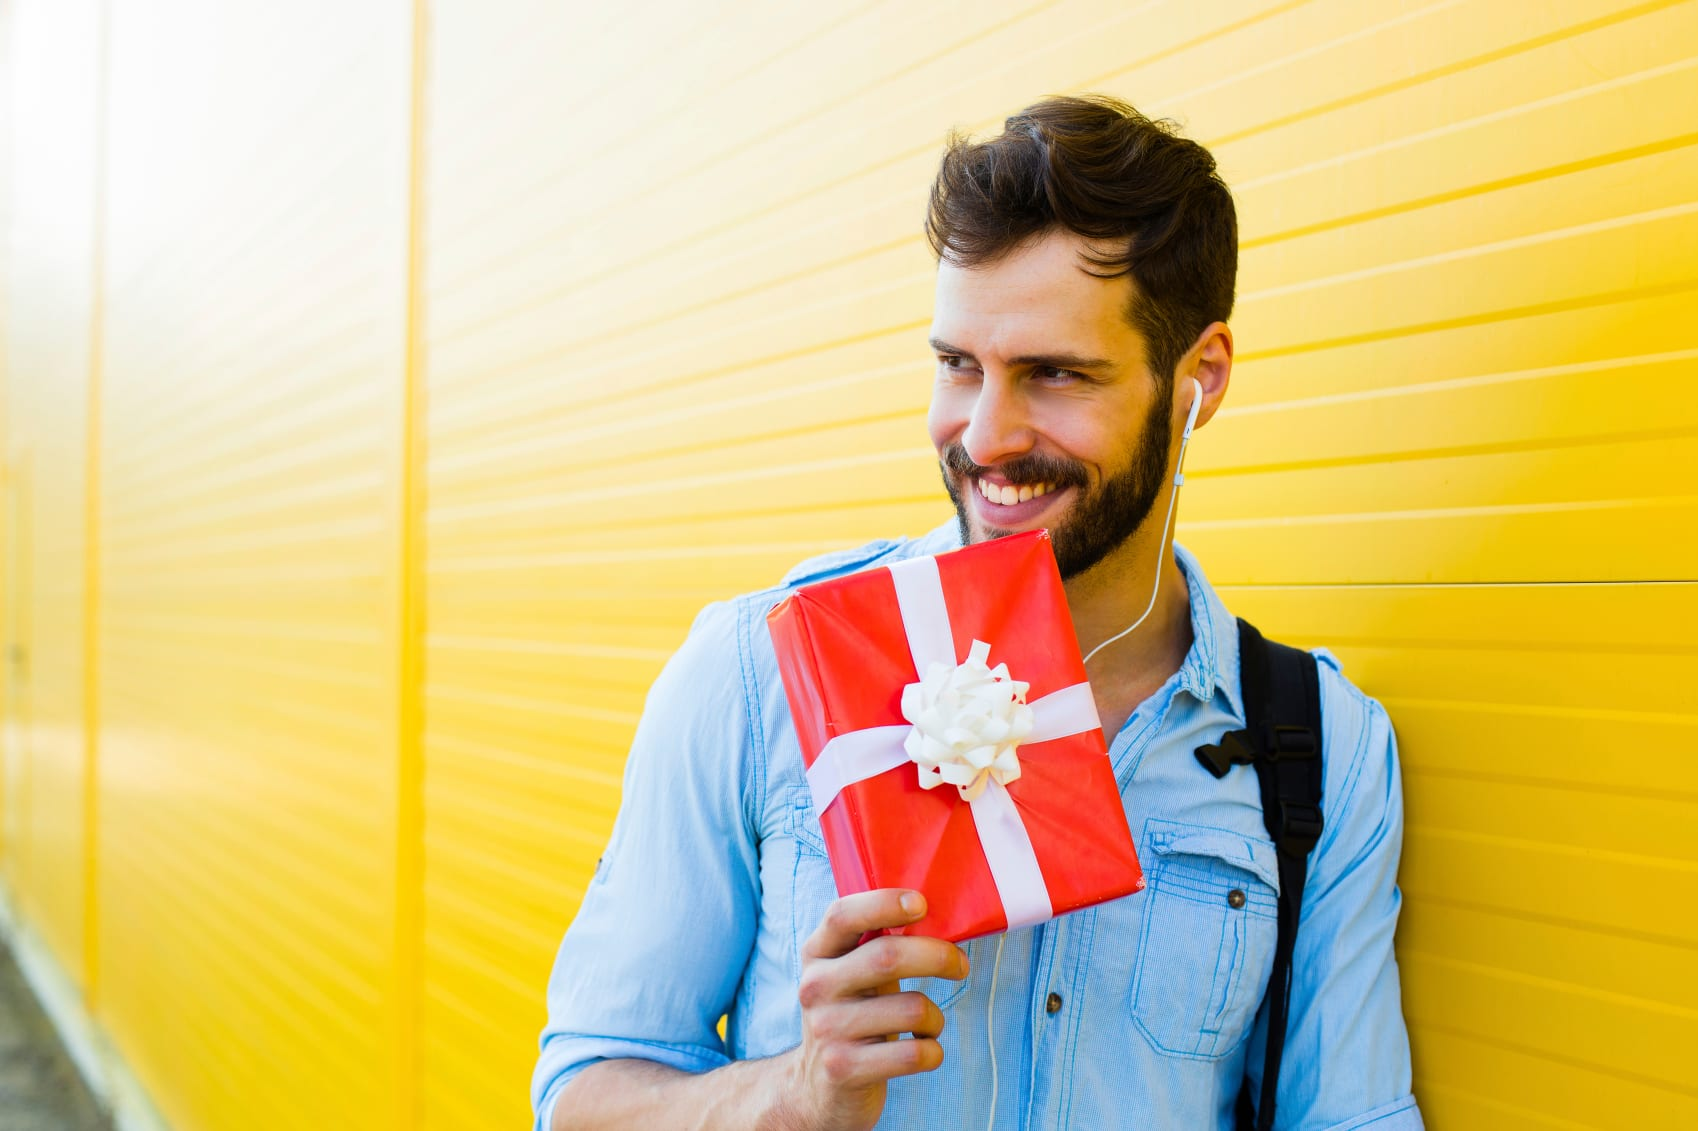 5 Great Greeting Gifts to Give Arriving Guests